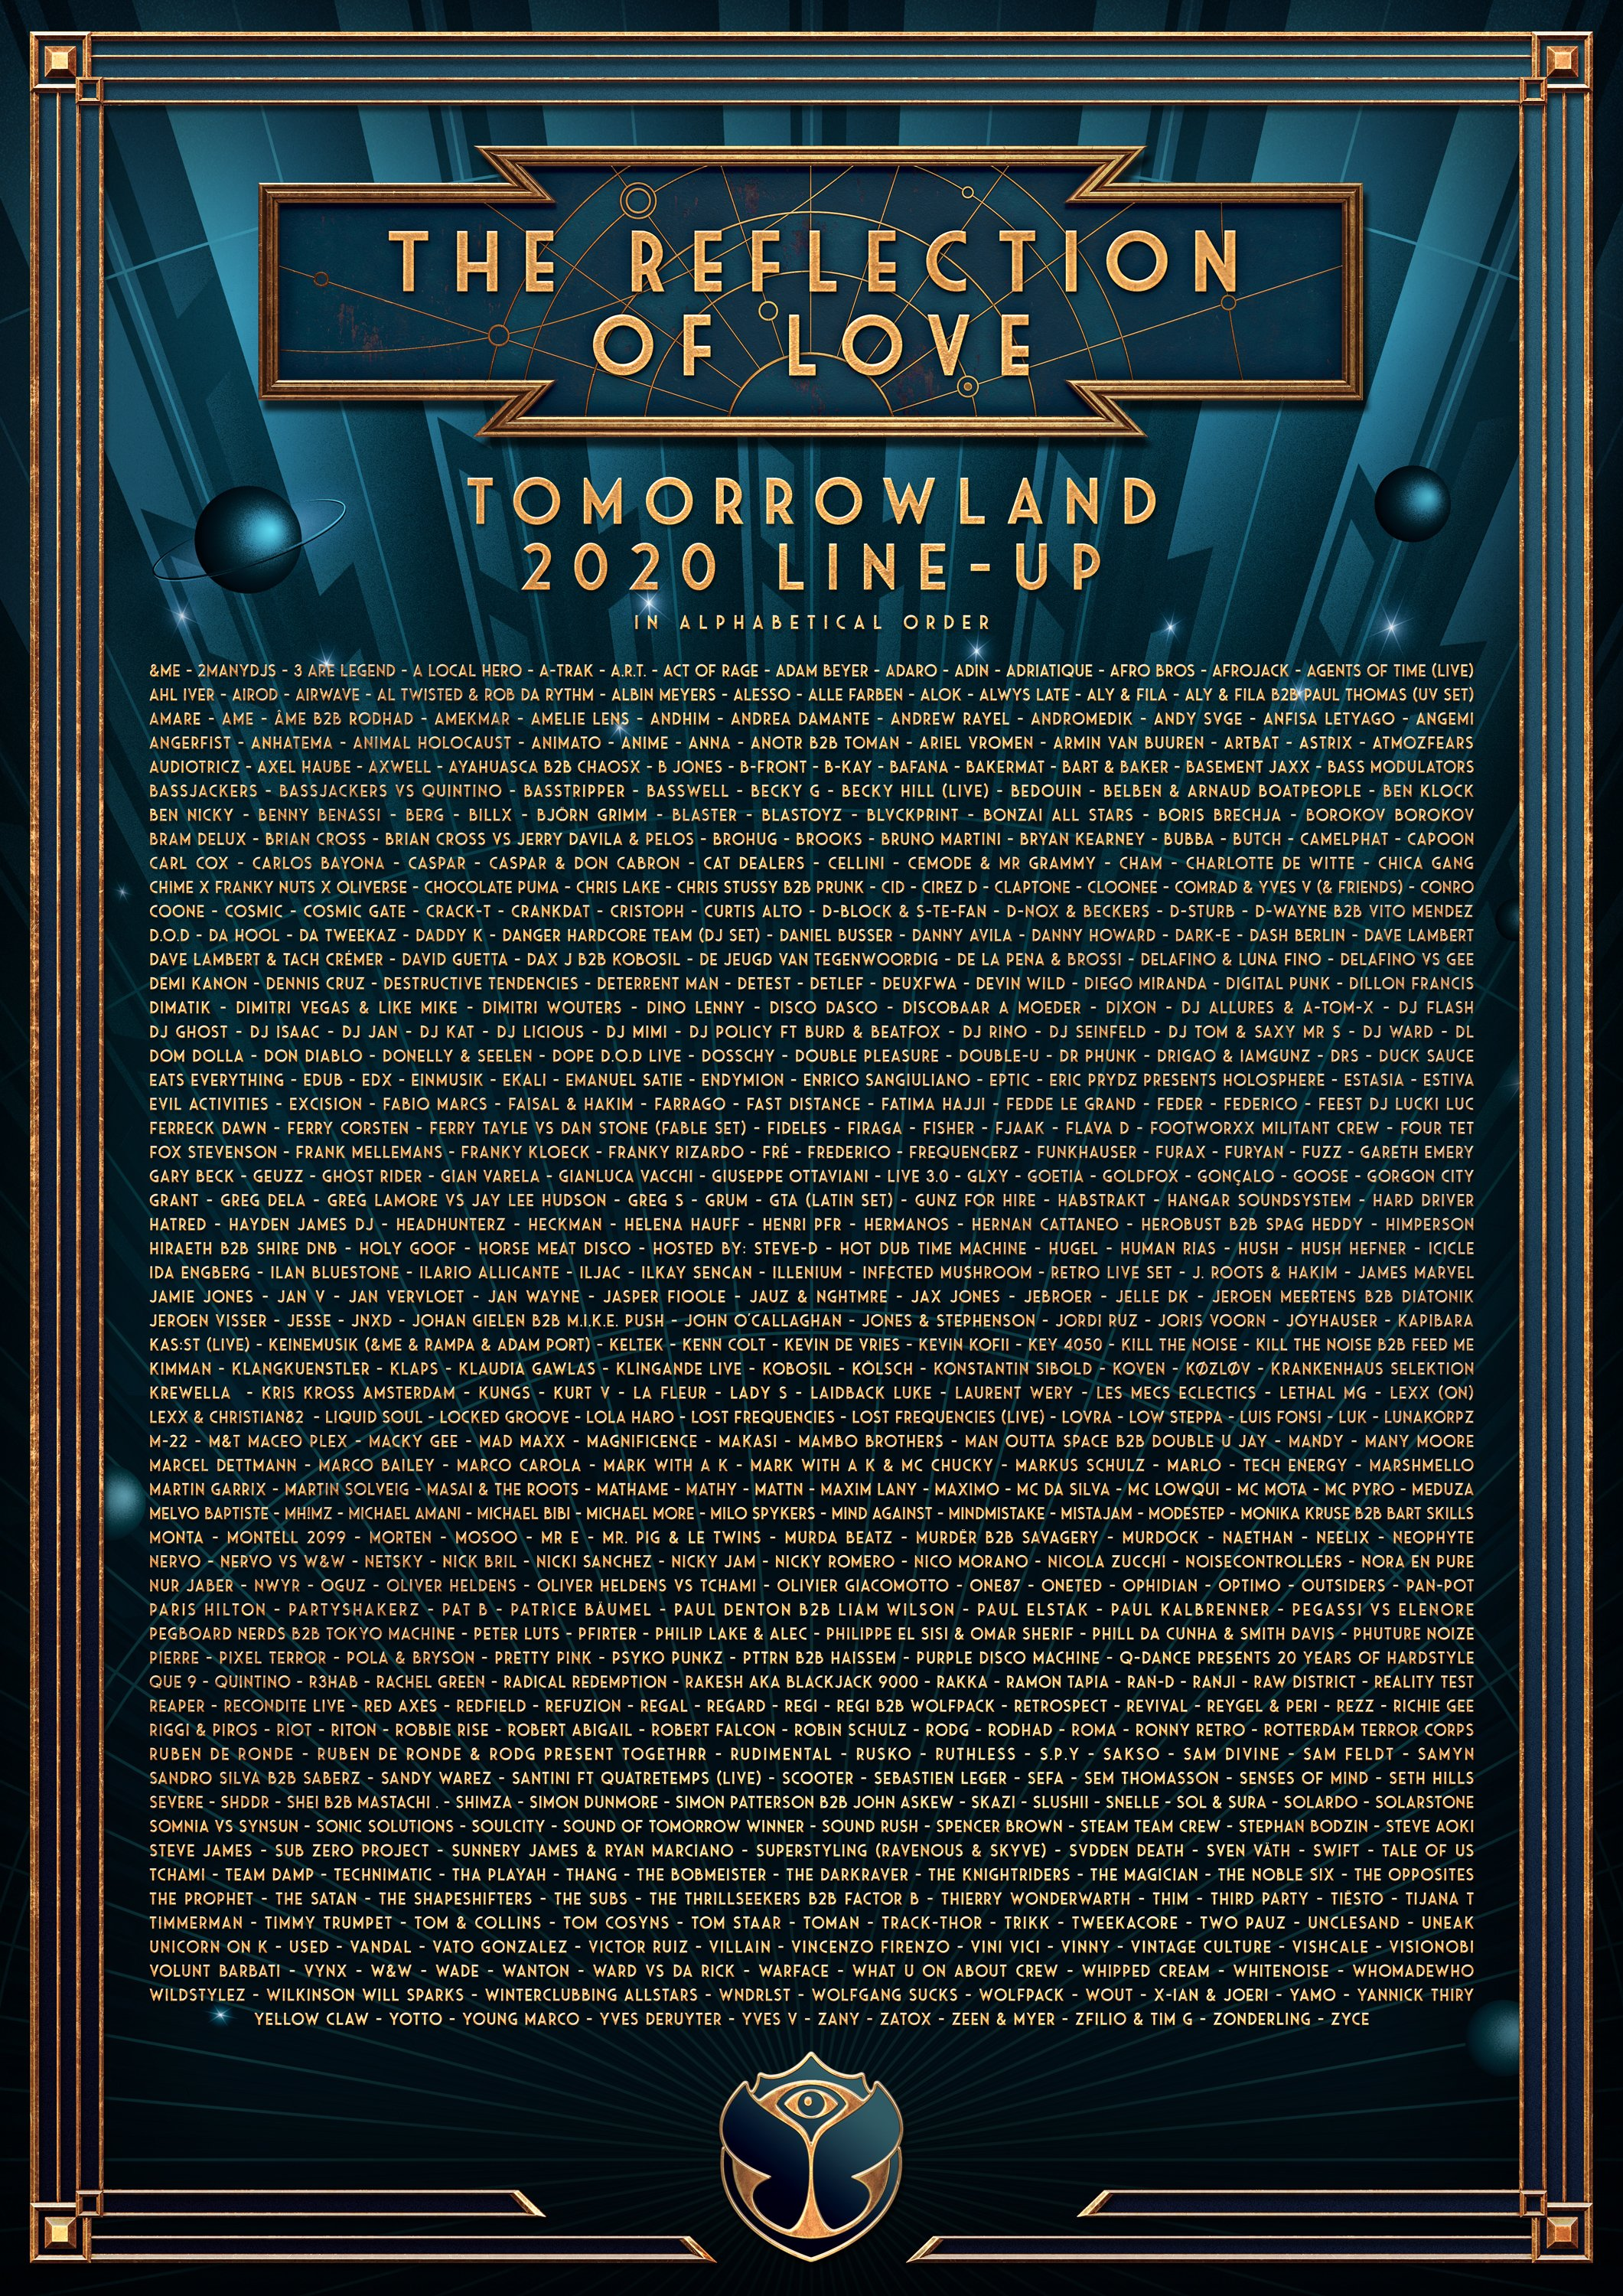 Tomorrowland lineup 2020